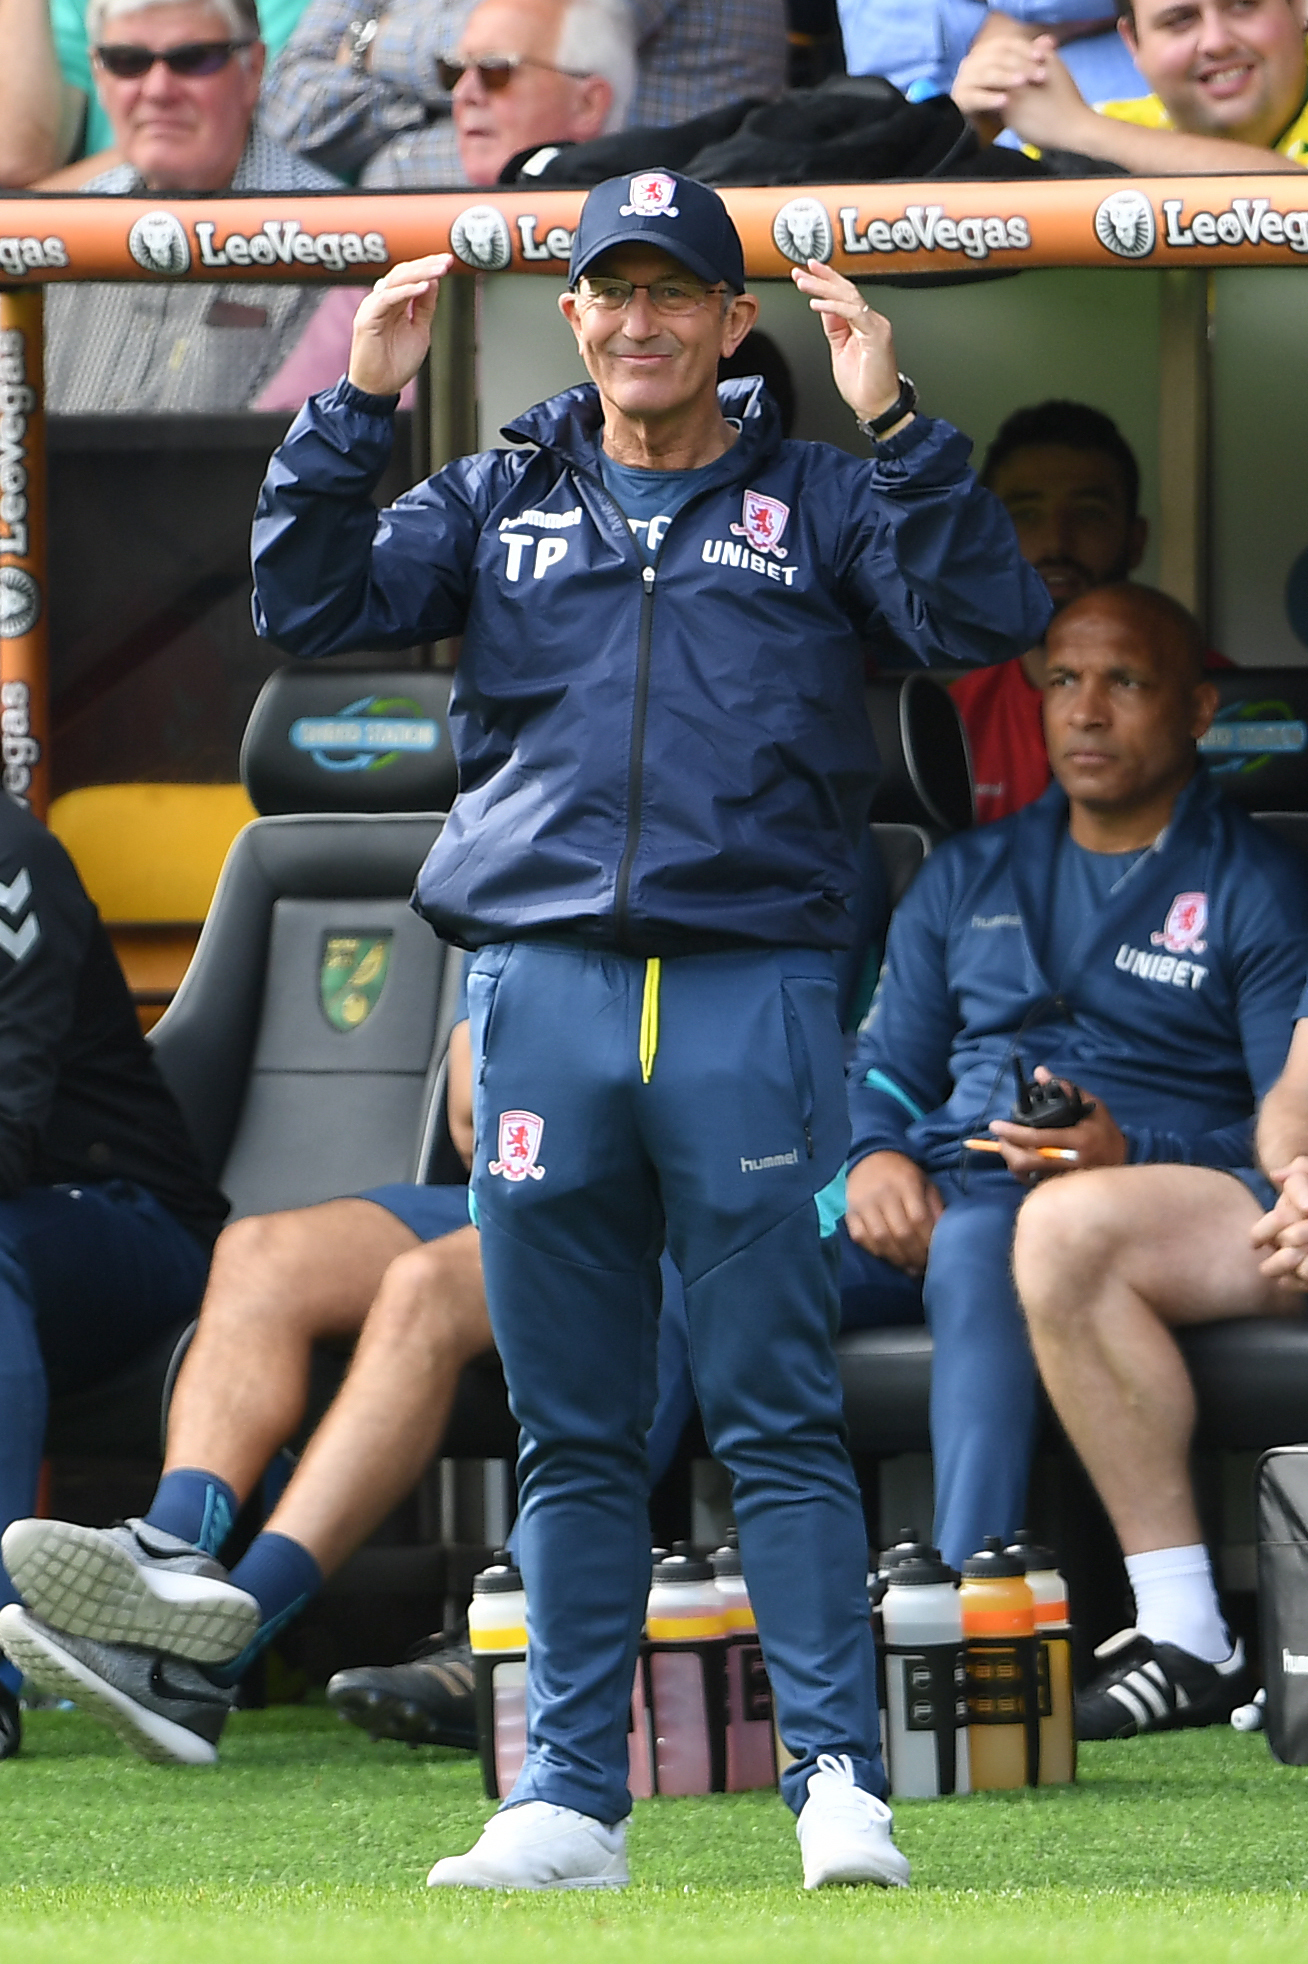 Middlesbrough manager Tony Pulis during the Sky Bet Championship match at Carrow Road, Norwich. PRESS ASSOCIATION Photo. Picture date: Saturday September 15, 2018. See PA story SOCCER Norwich. Photo credit should read: Joe Giddens/PA Wire. RESTRICTIONS: E